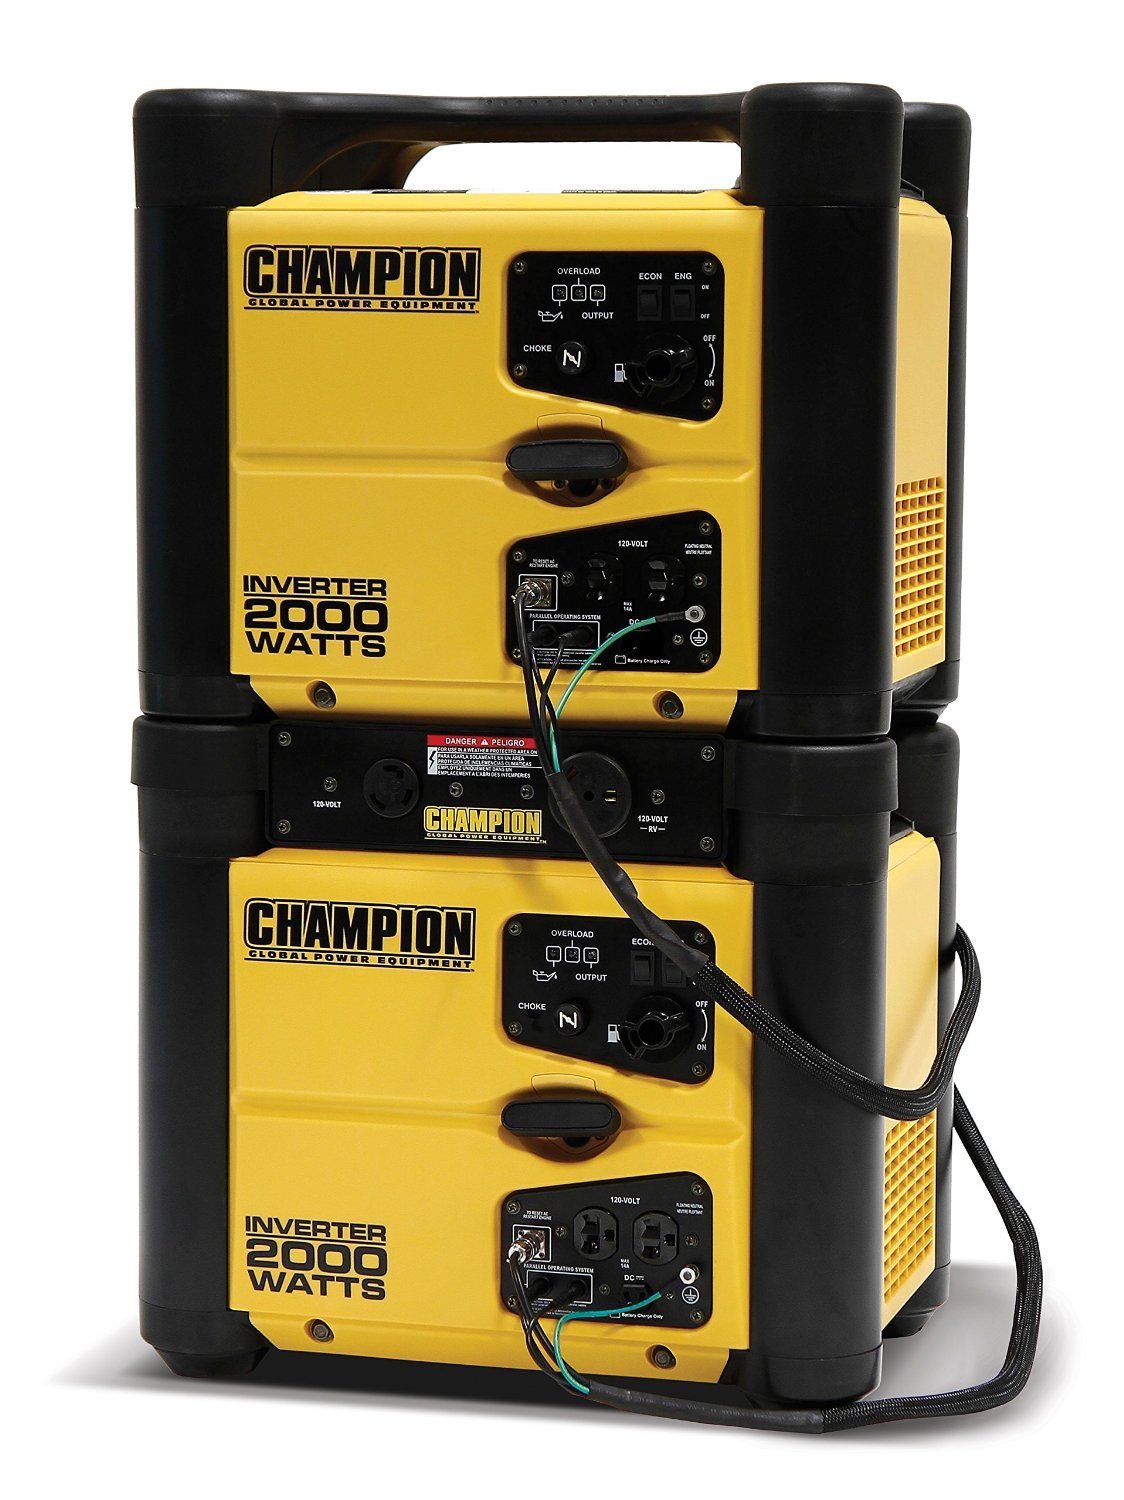 Champion Inverter Generator Costco : Best portable generators under the popular home